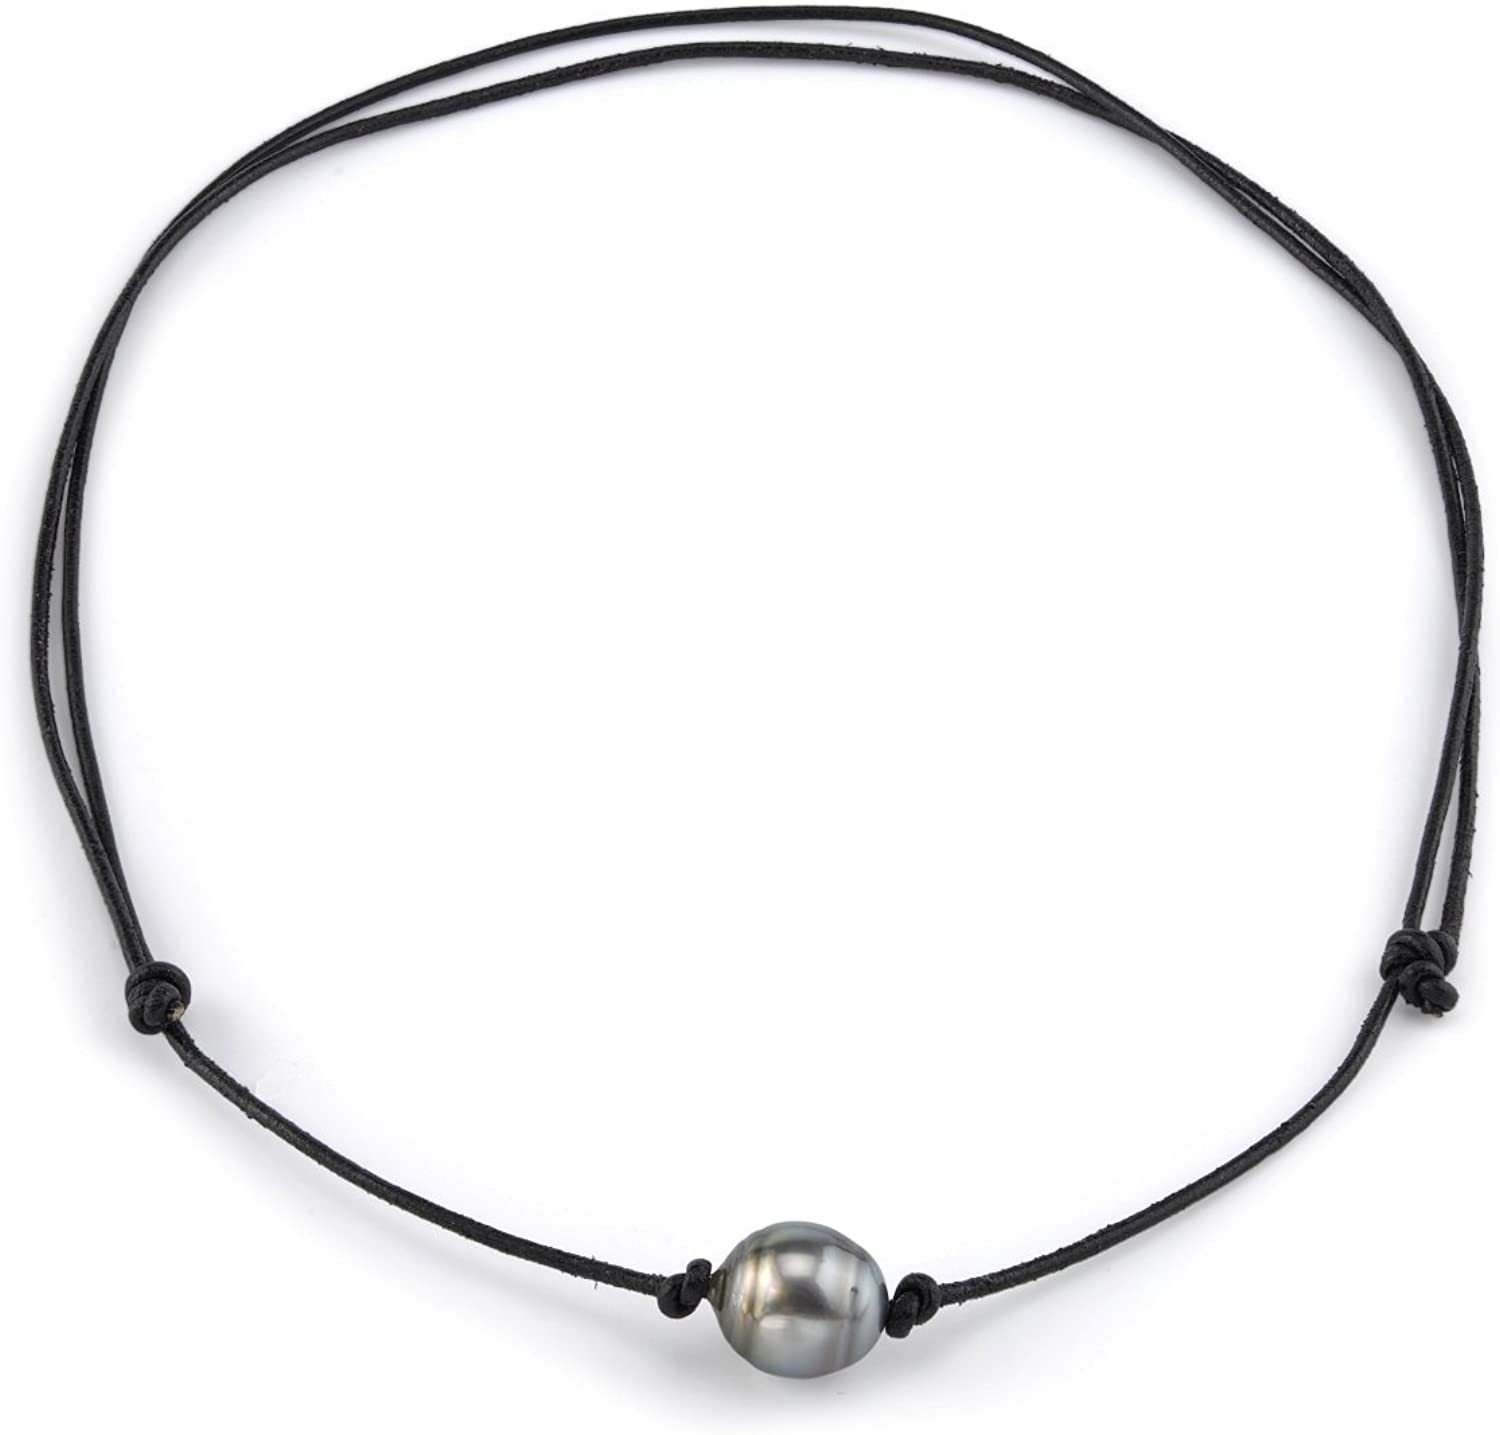 THE PEARL SOURCE 10-11mm Baroque Genuine Black Tahitian South Sea Cultured Pearl Adjustable Leather Necklace for Women